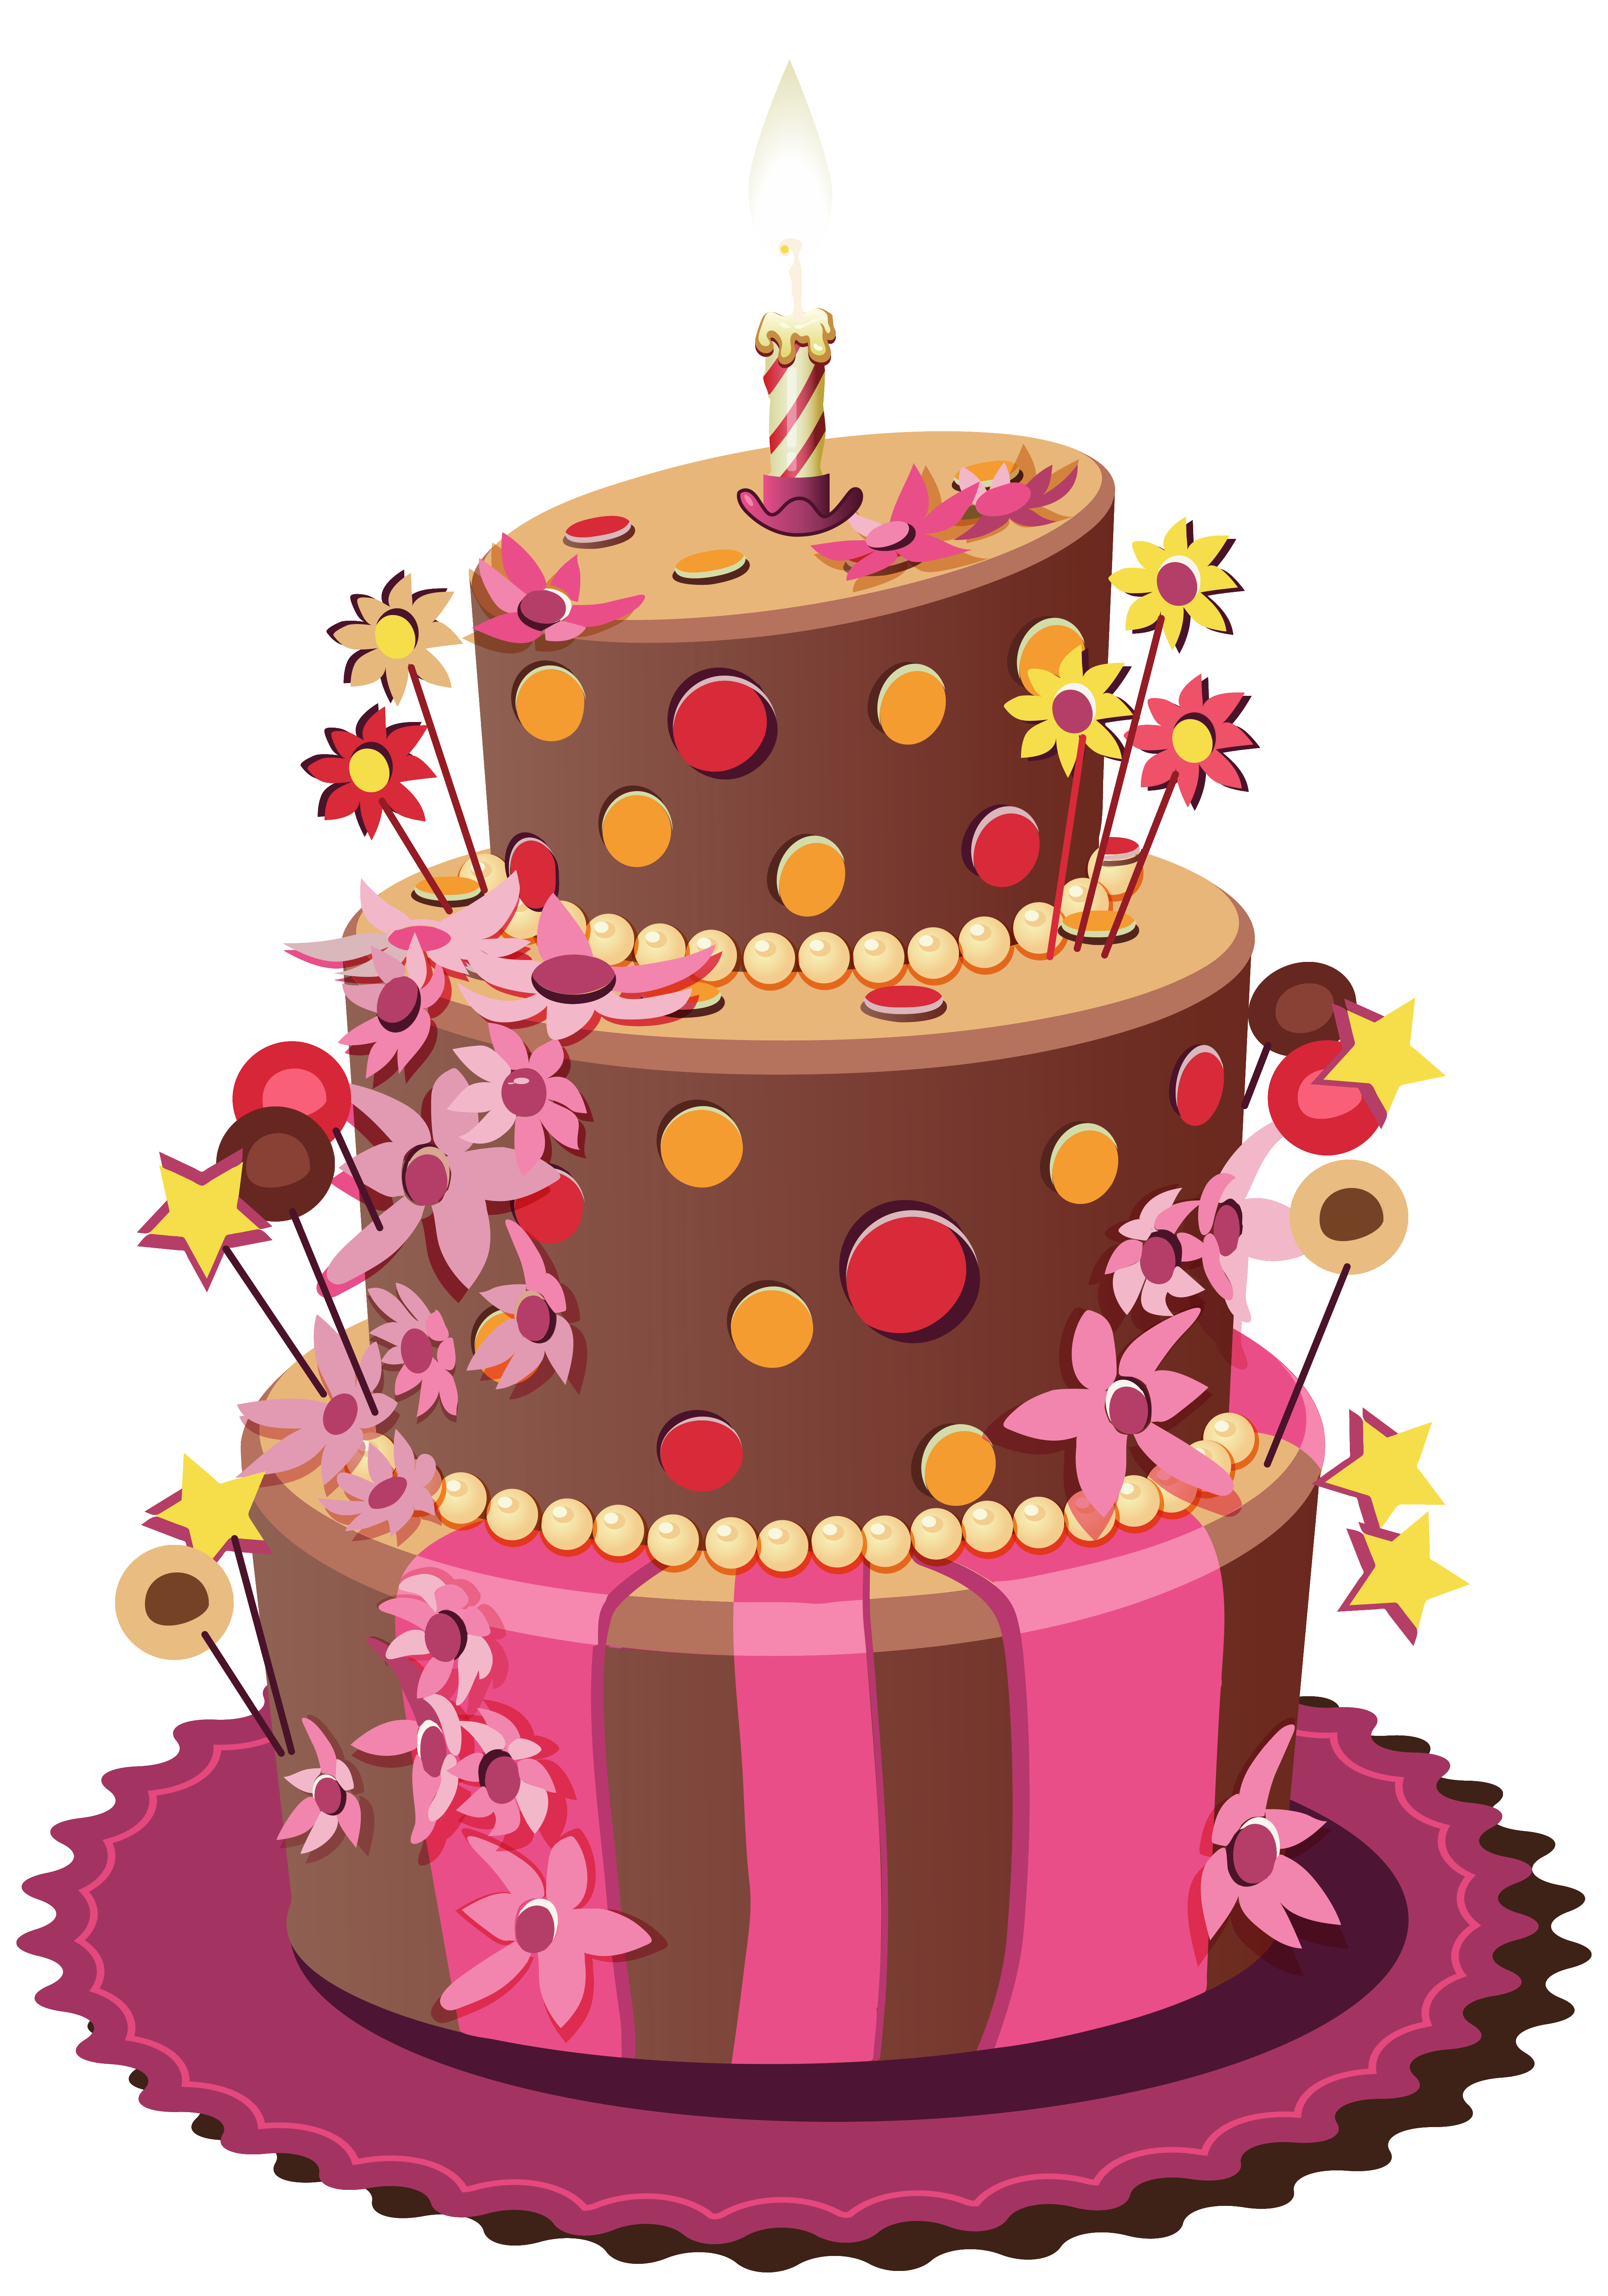 Pink birthday cake clipart graphic royalty free stock Birthday cake Wedding cake Sugar cake Torte - Birthday Cake PNG ... graphic royalty free stock